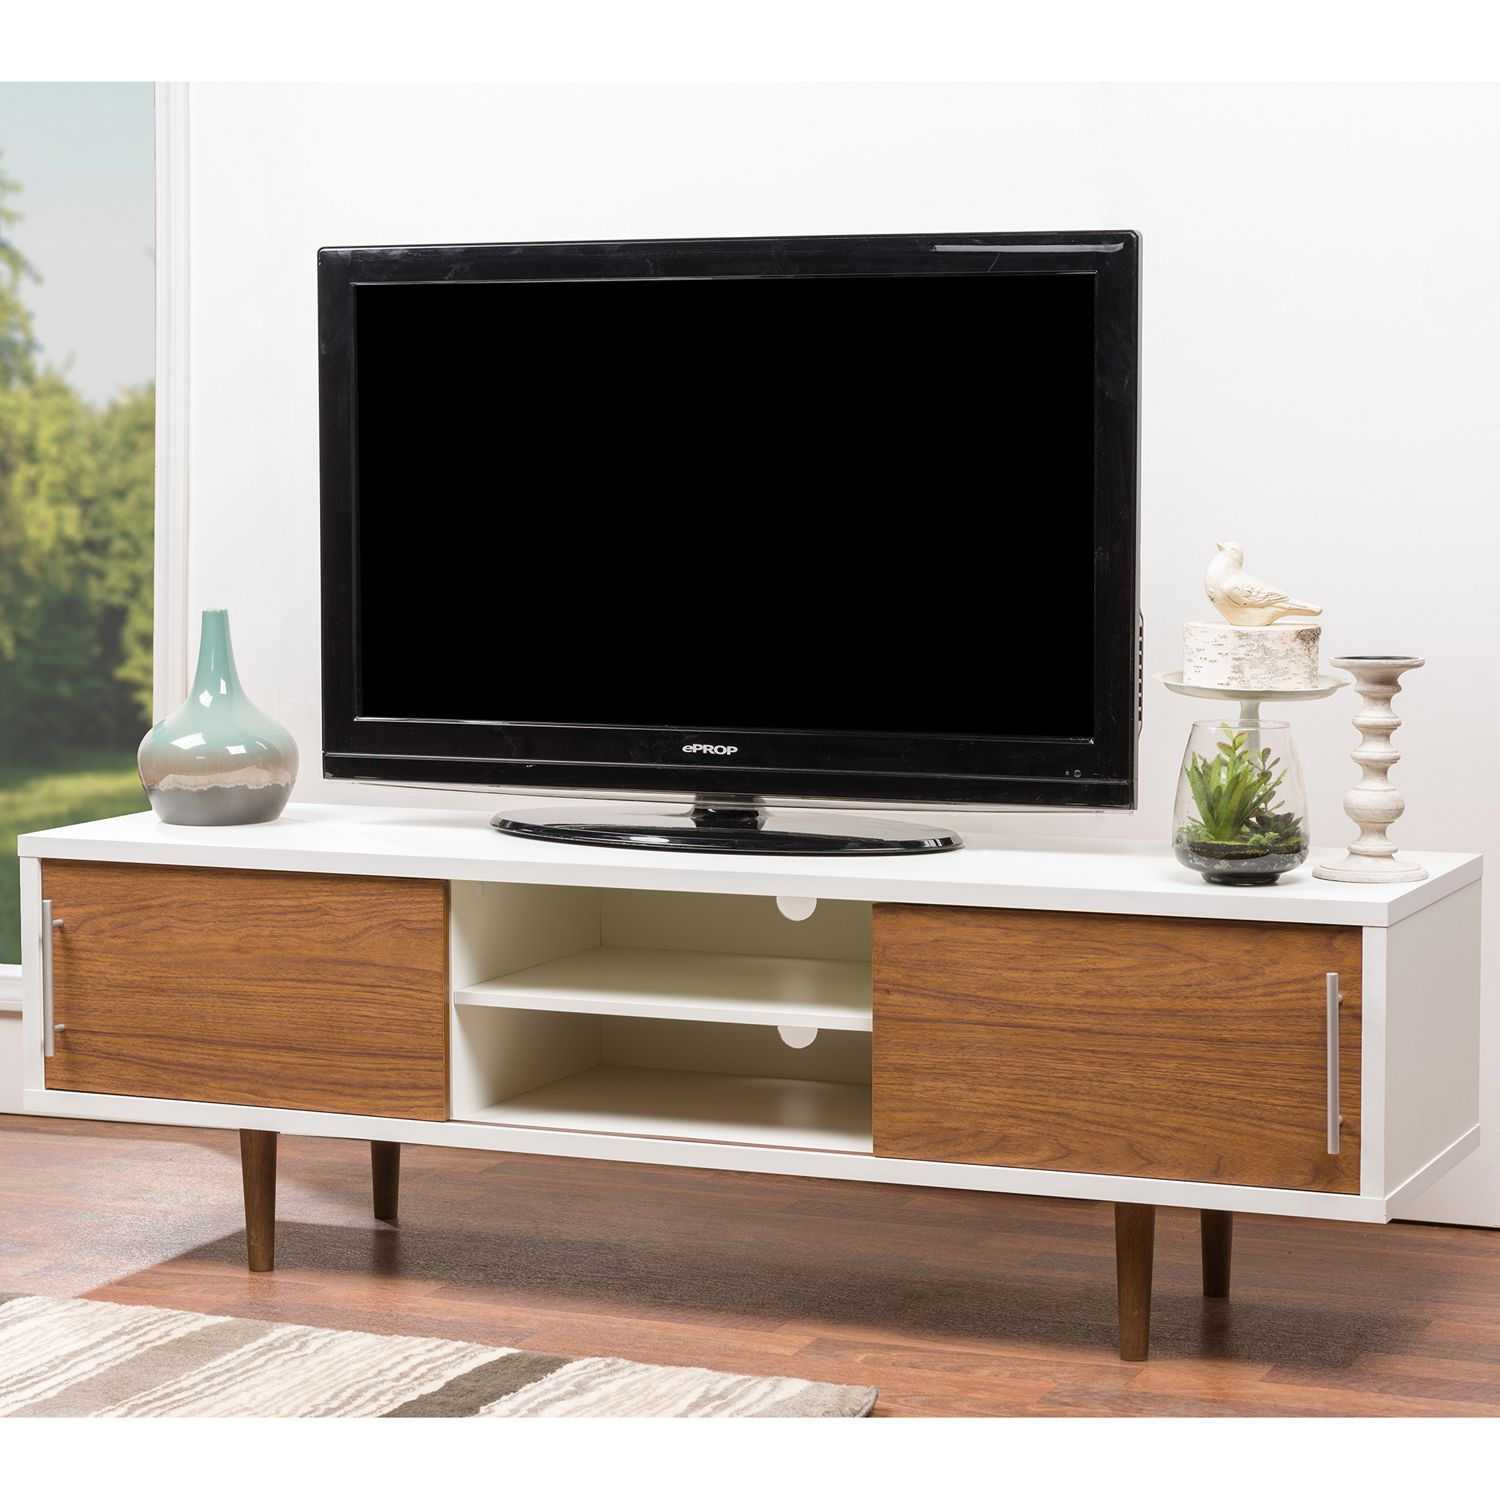 Modern Furniture Entertainment Center mid-century white and brown tv standbaxton studiobaxton